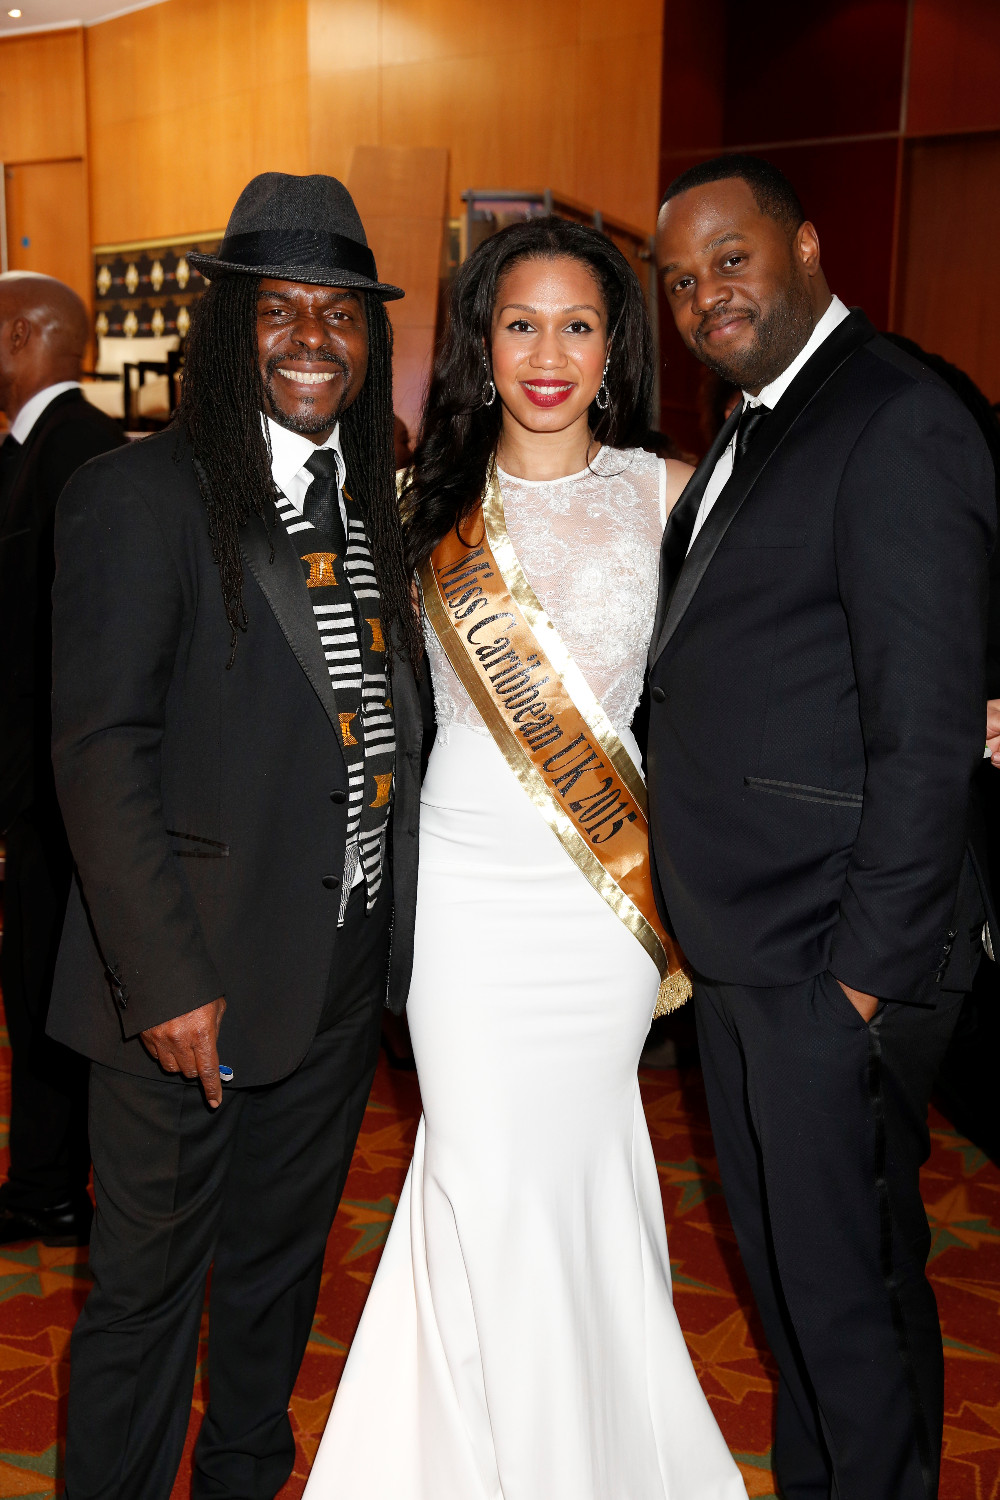 Amy Harris-Willock with Victor Romero Evans (singer) and Javone Prince (comediene)